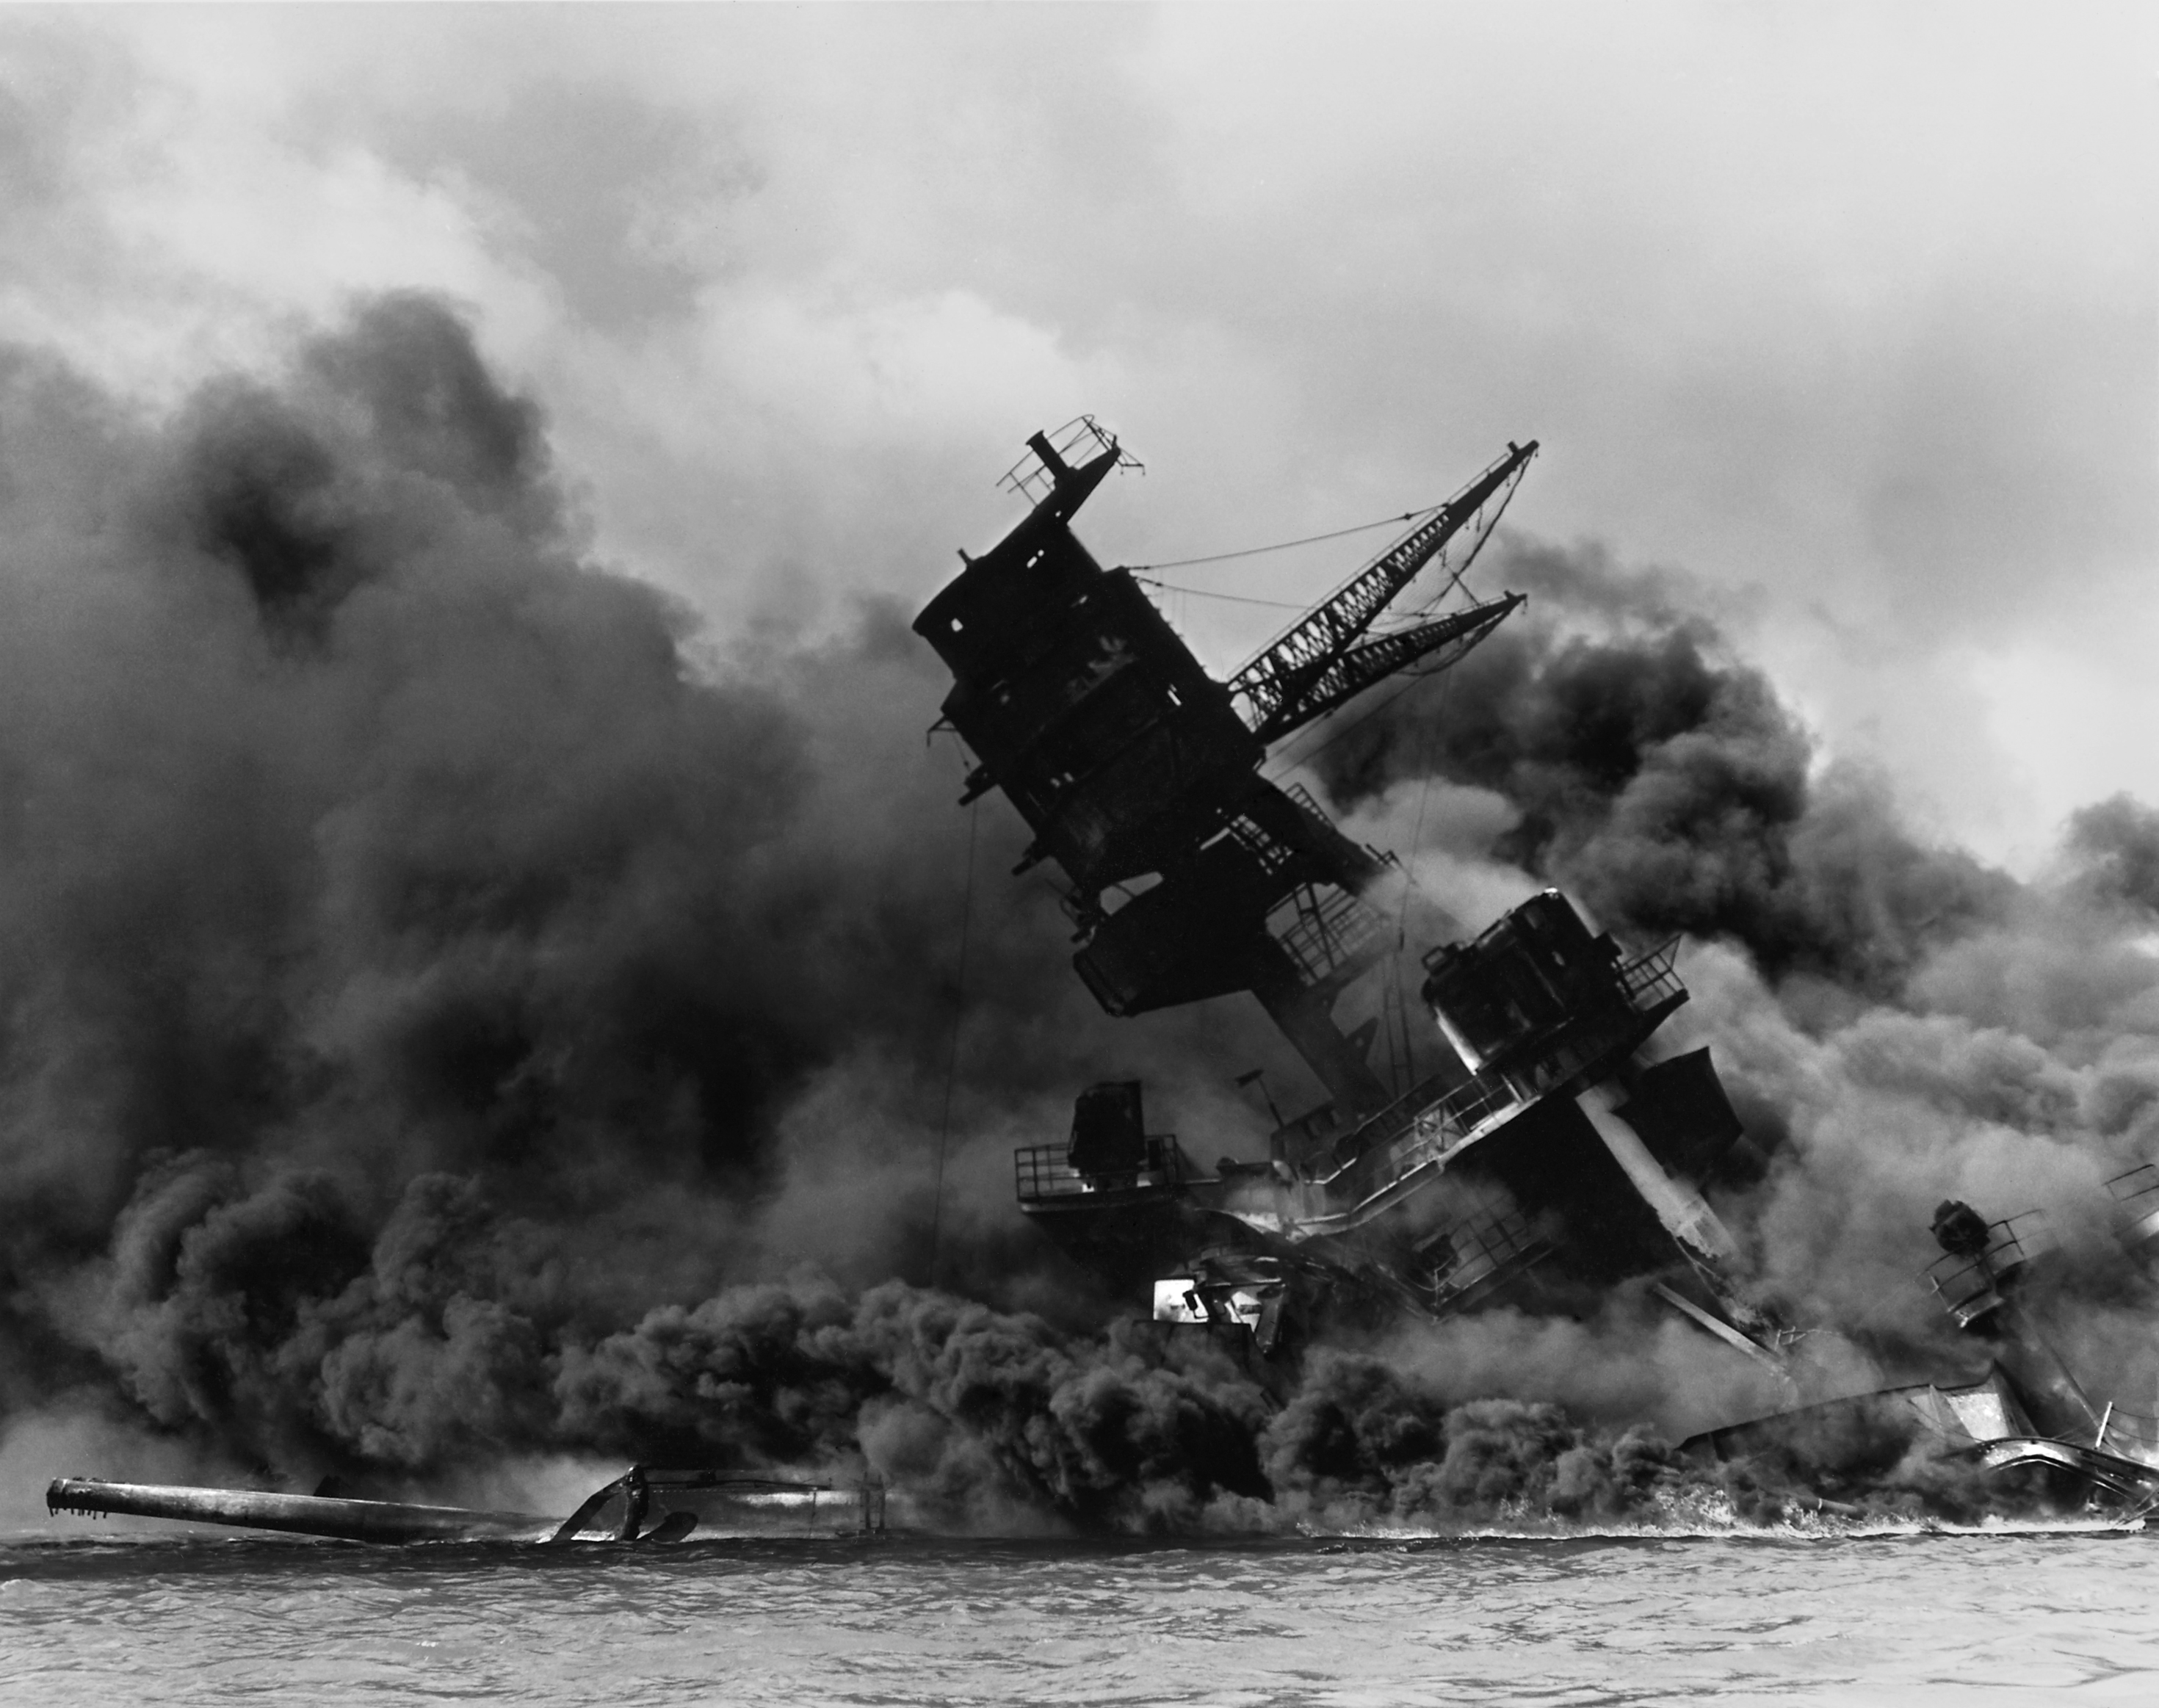 https://upload.wikimedia.org/wikipedia/commons/0/09/The_USS_Arizona_(BB-39)_burning_after_the_Japanese_attack_on_Pearl_Harbor_-_NARA_195617_-_Edit.jpg